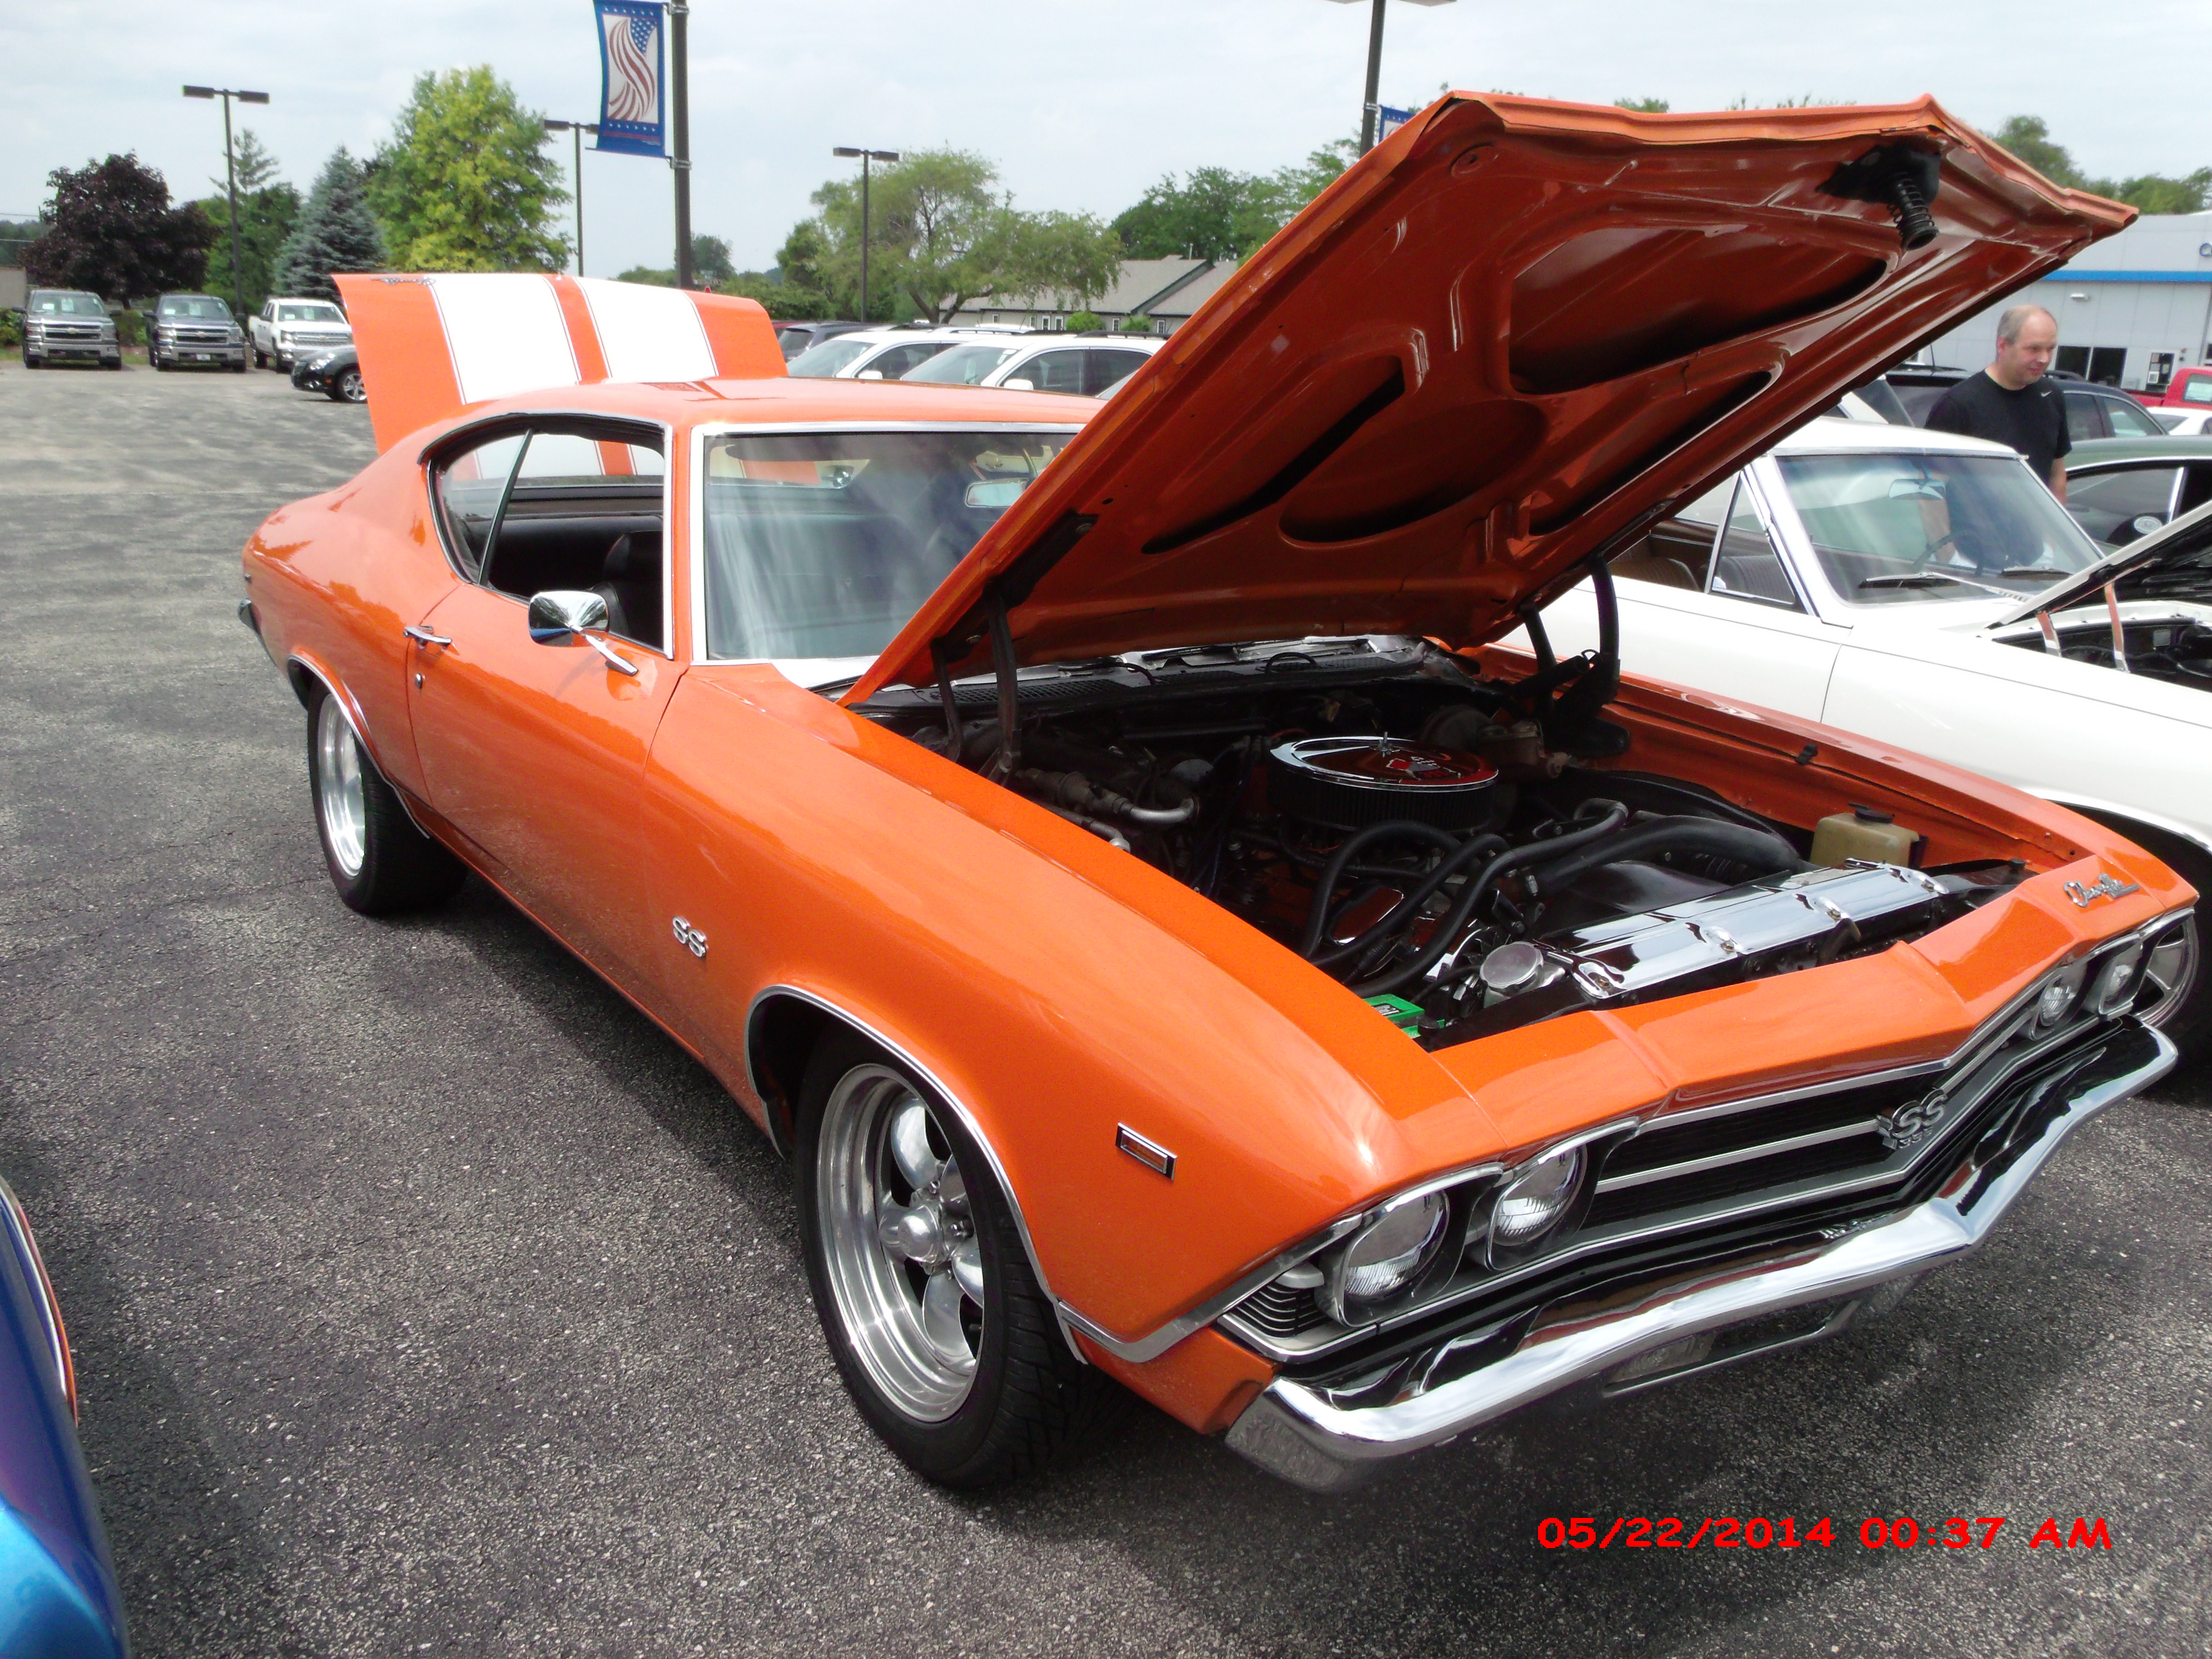 Northern Illinois Chevelle Club Author Archives Chevy Ss Hello I Have A 64 That Ive If You Didnt Make This Event We Missed Watch The Upcoming Events And It To Next Function Because There Is Lot Of Summer Yet Come